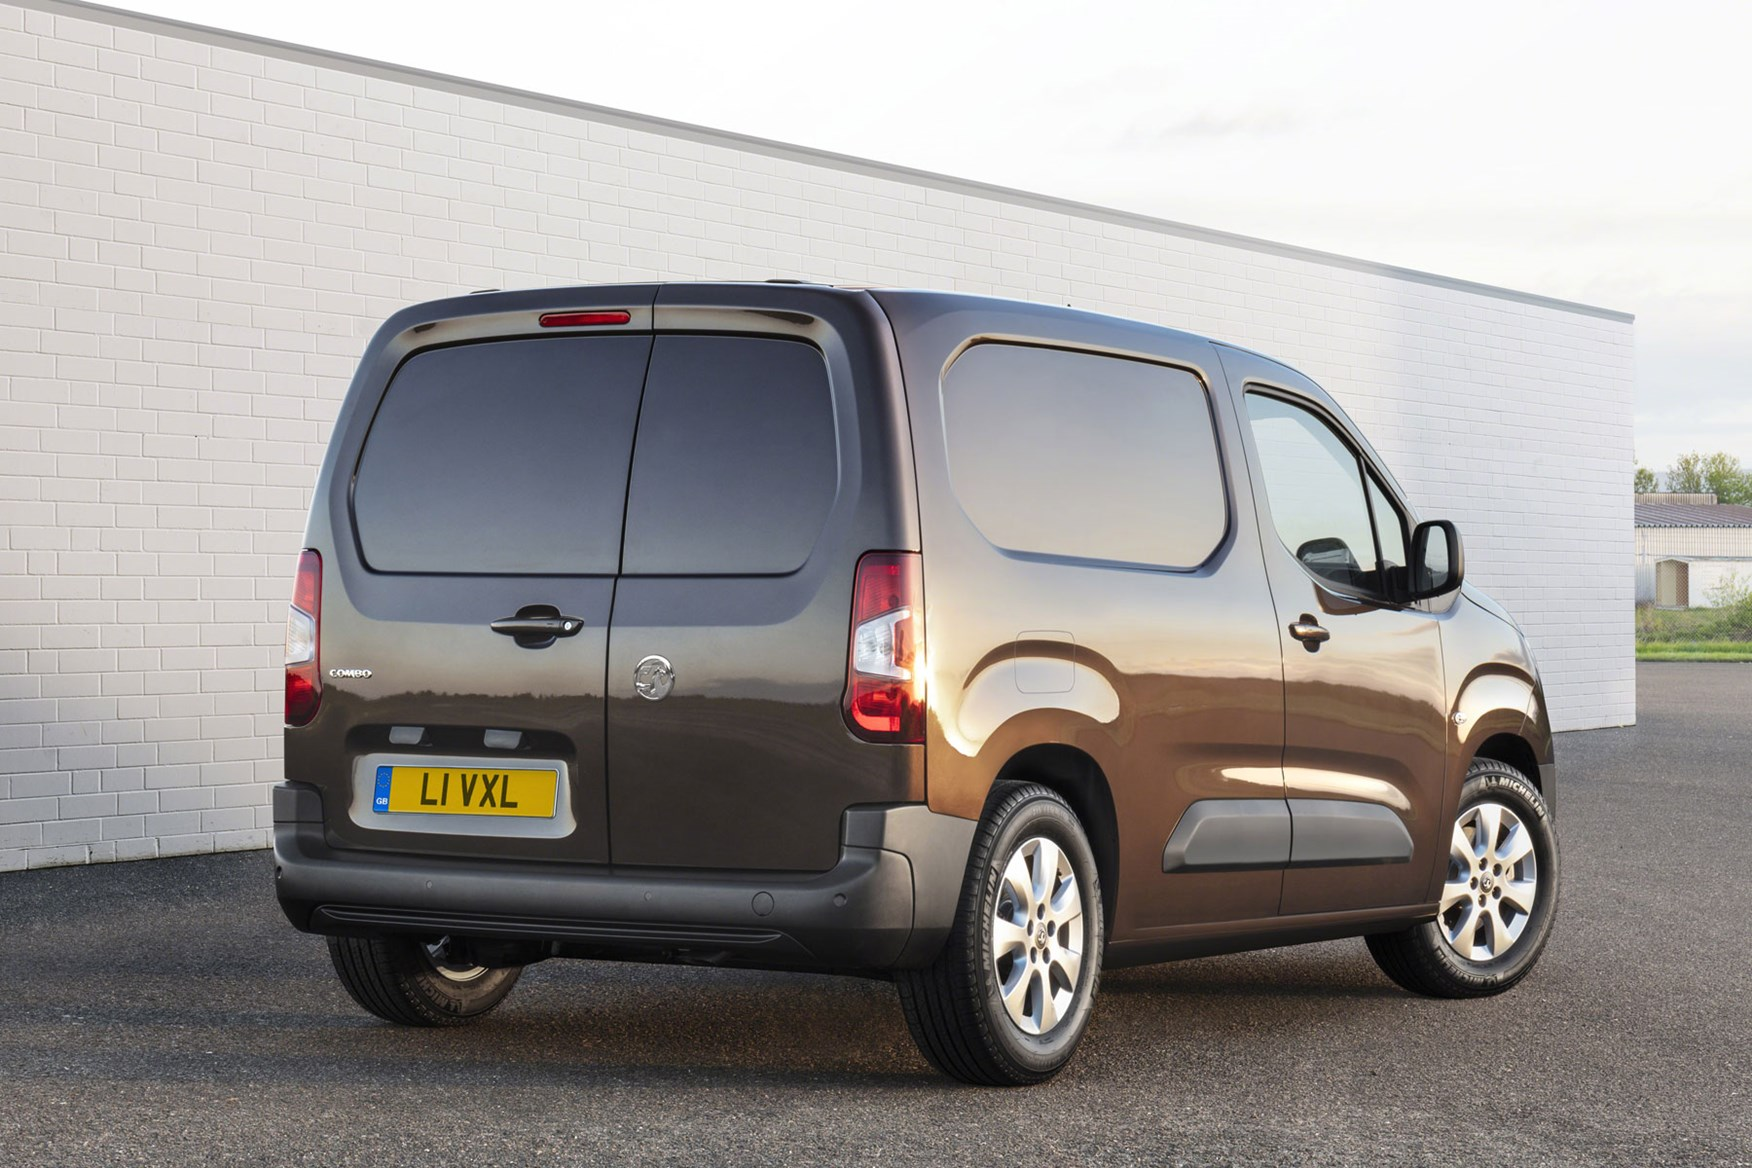 vauxhall combo 2018 prices engines and trim levels revealed parkers. Black Bedroom Furniture Sets. Home Design Ideas